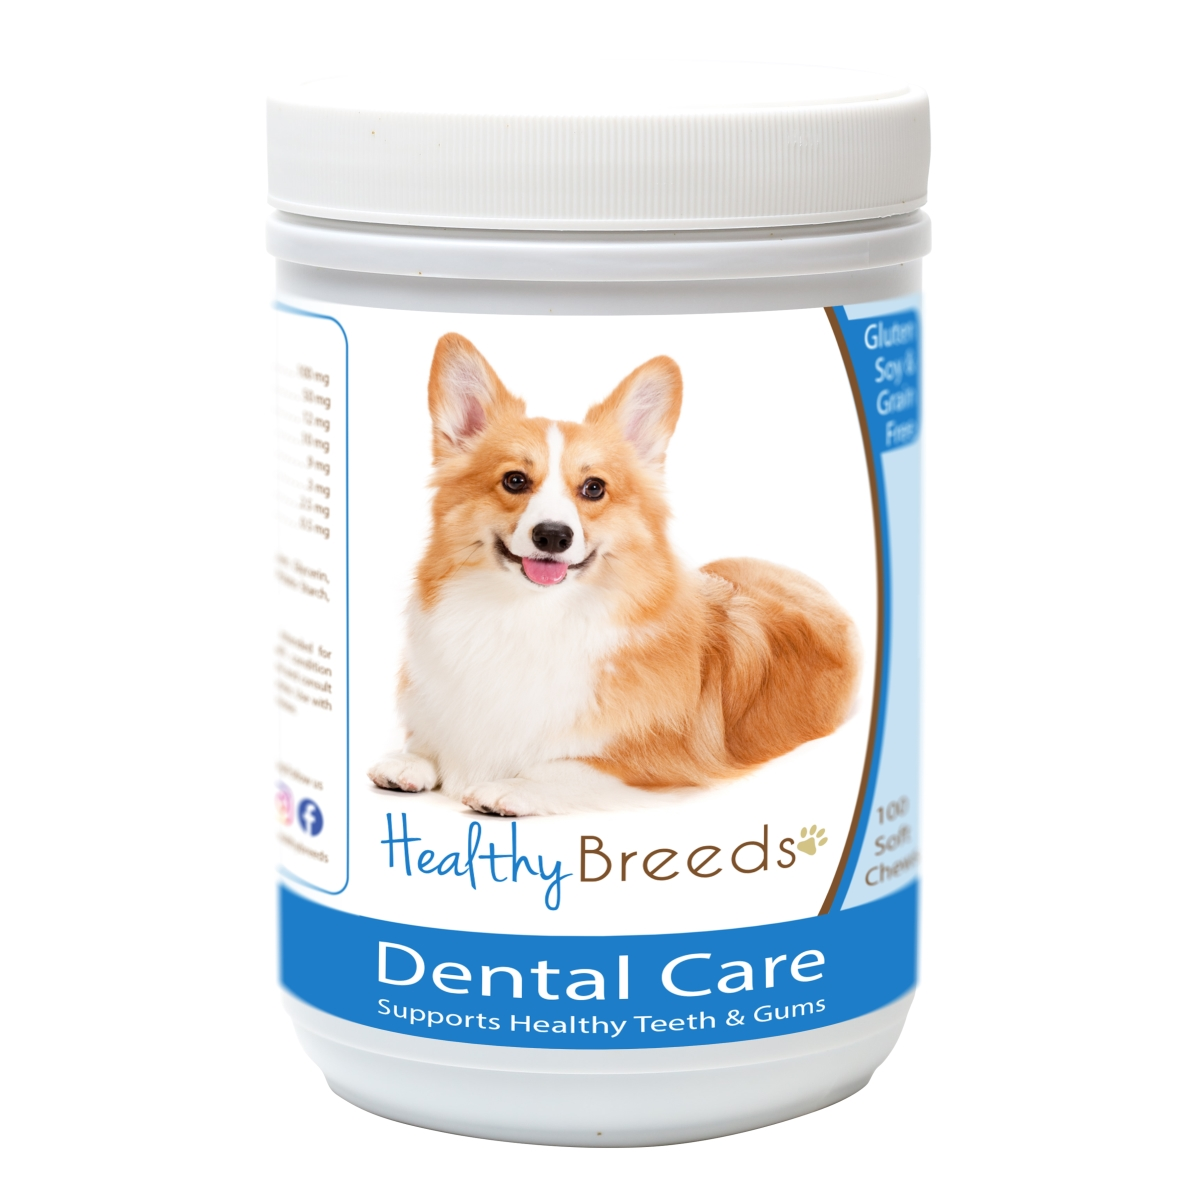 Healthy Breeds 840235162735 Pembroke Welsh Corgi Breath Care Soft Chews for Dogs - 60 Count